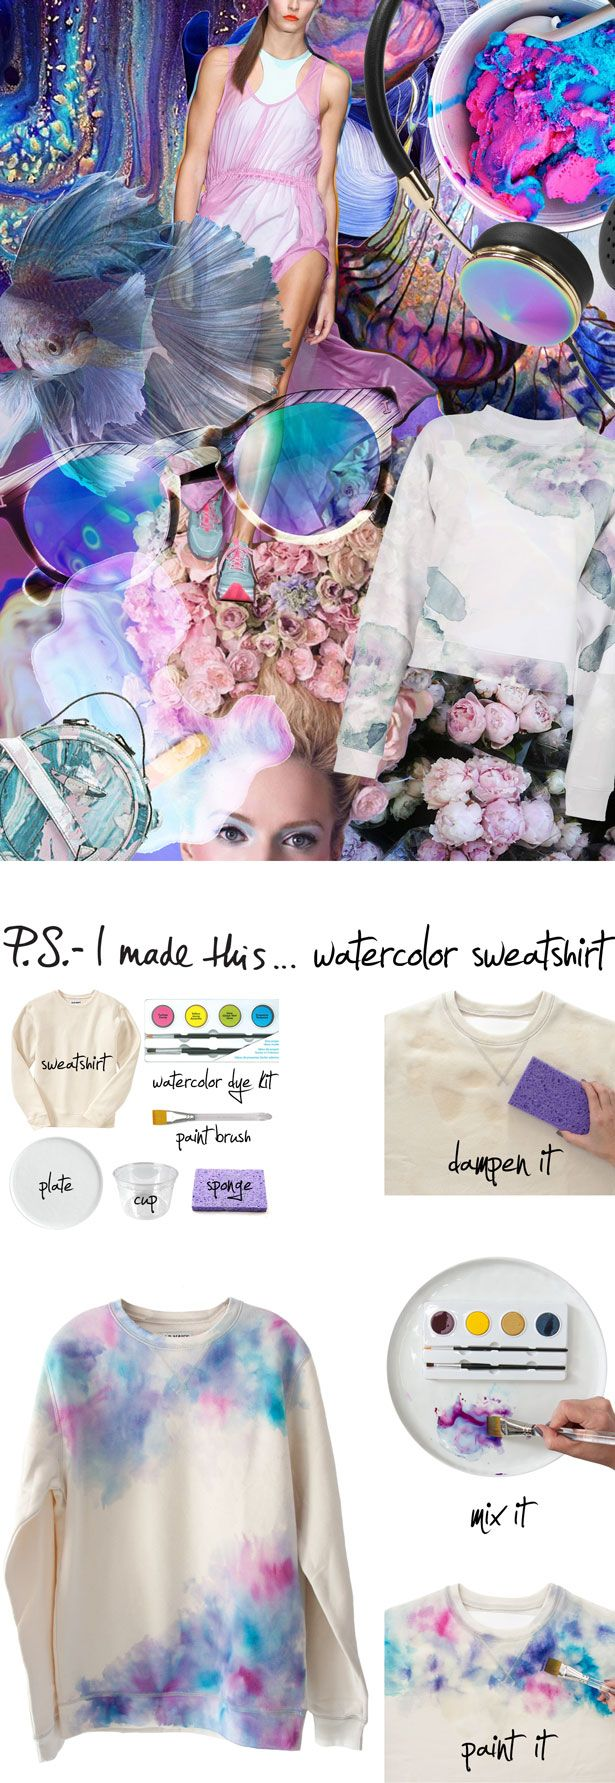 P.S.- I made this...Watercolor Sweatshirt #PSIMADETHIS #DIY